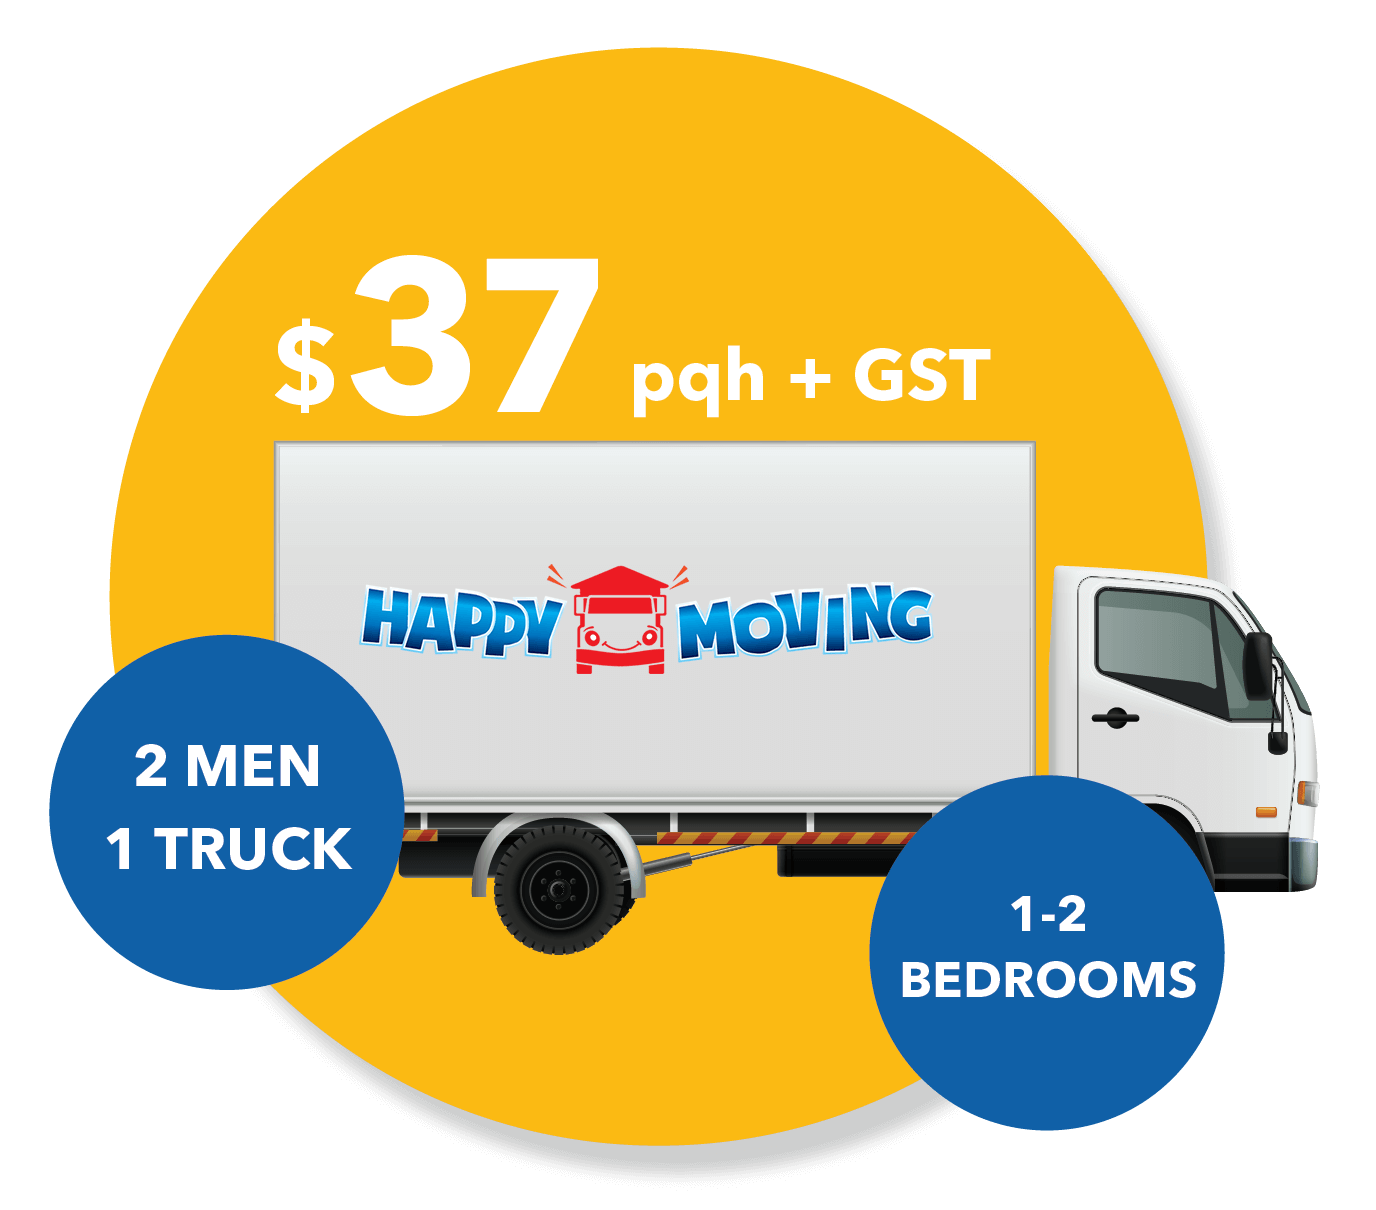 Sydney Removal Rates For 1-2 Bedrooms